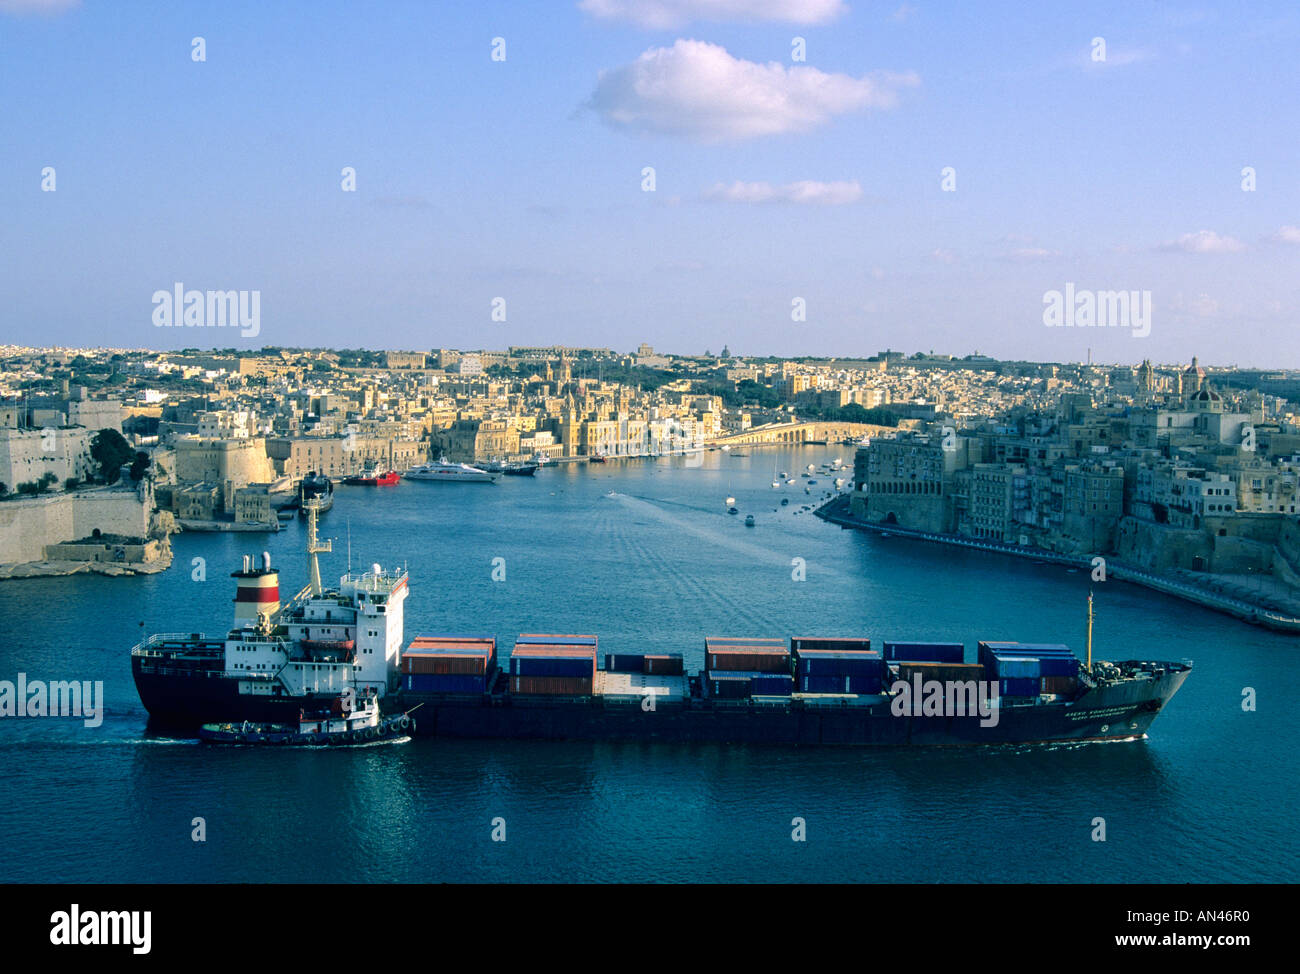 Large cargo ship sails into Valletta harbour / port, Malta - with a pilot boat / tug in the afternoon light - Stock Image